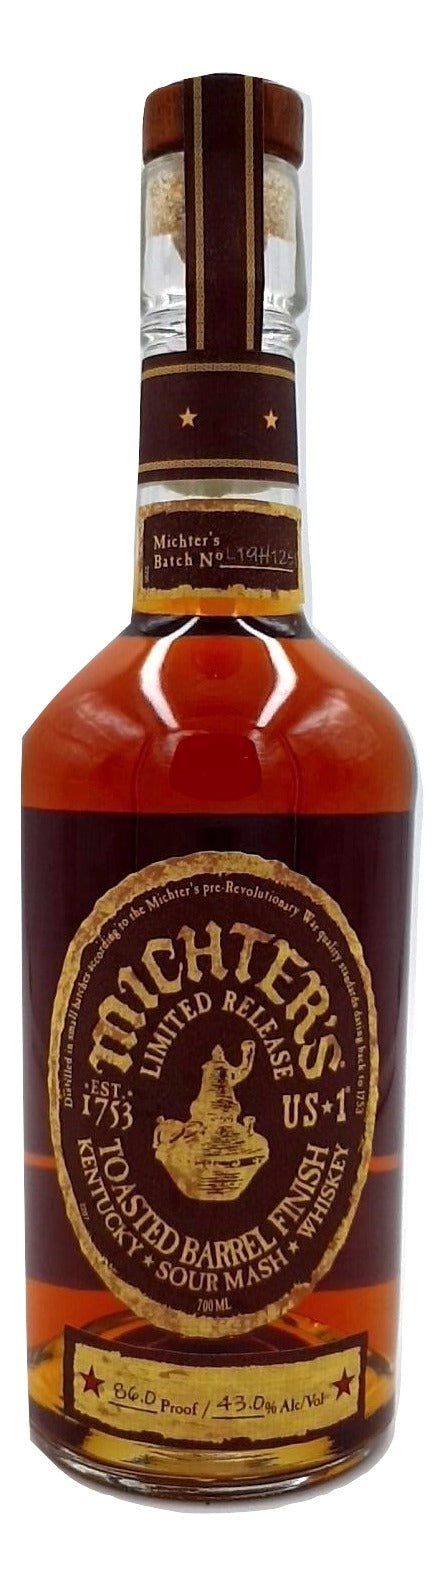 Michter's Toasted Barrel Sour Mash For Sale - NativeSpiritsOnline